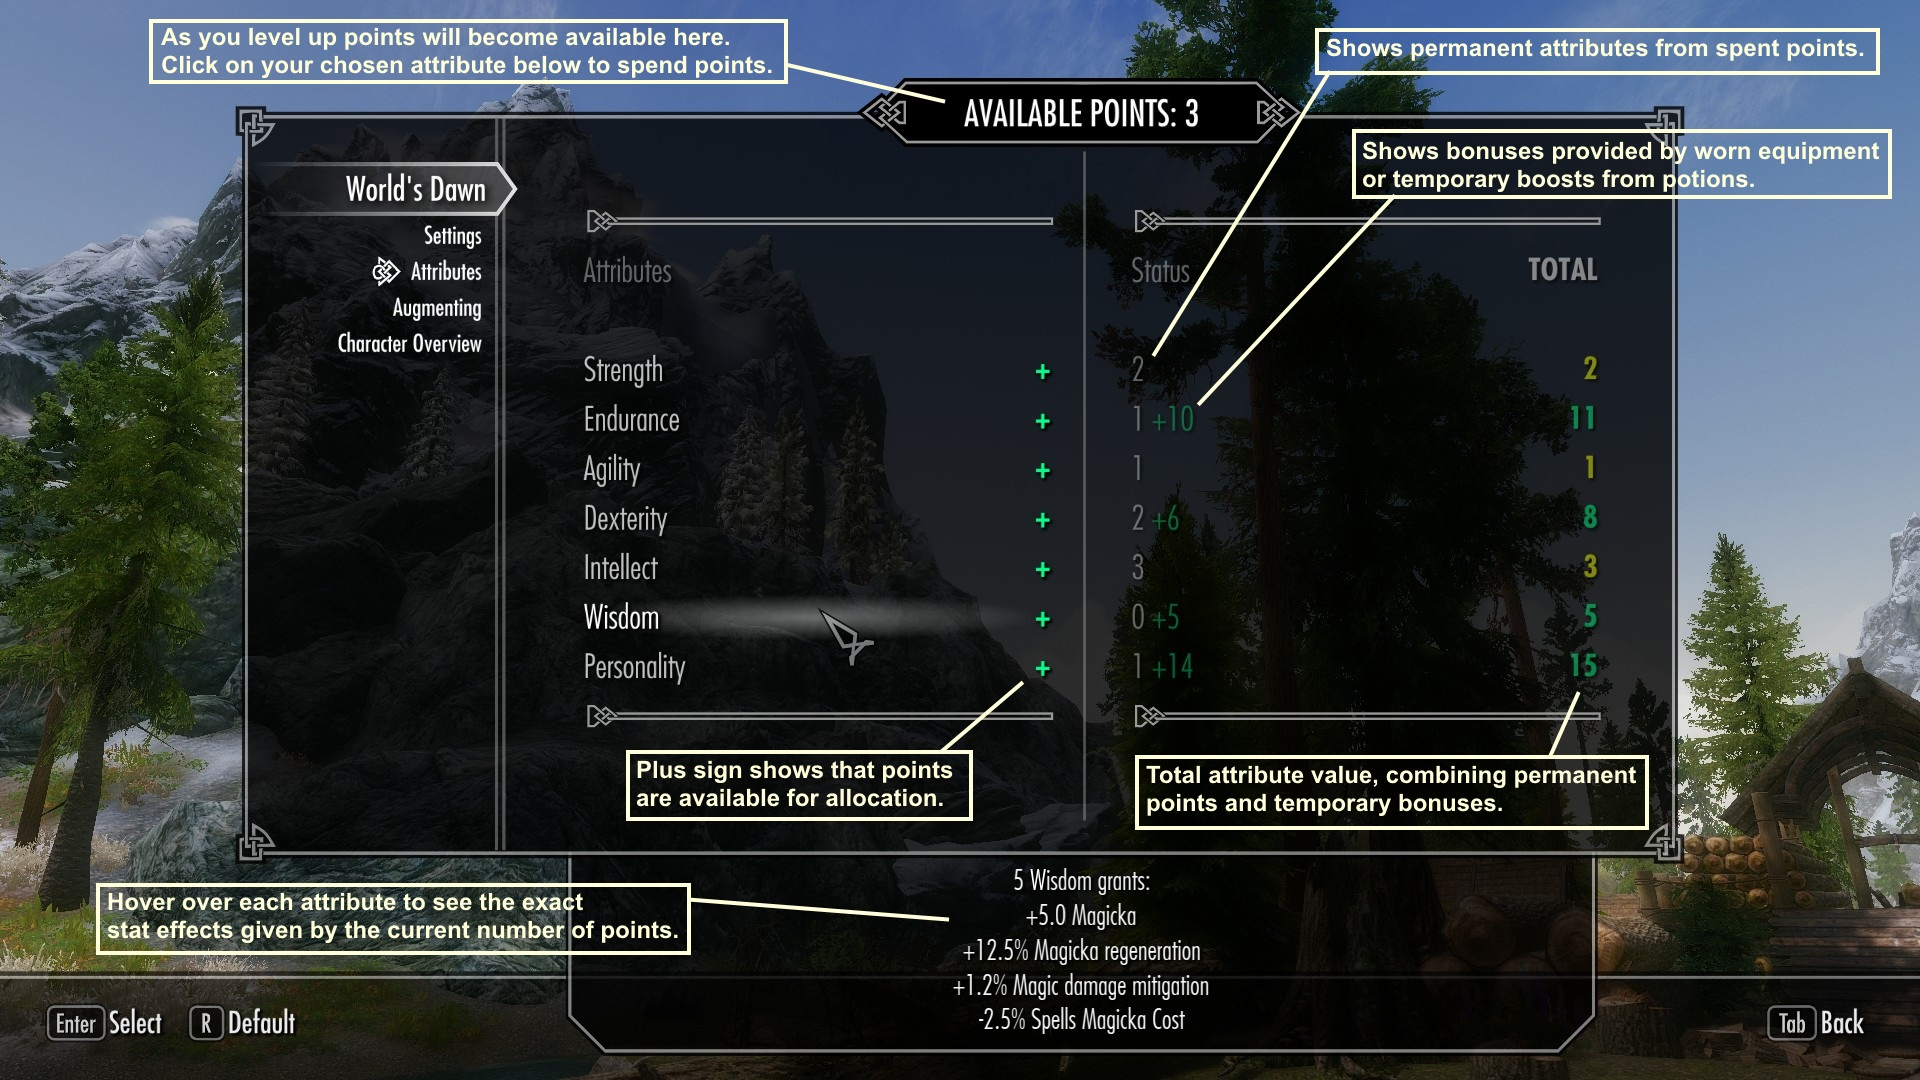 Worlds Dawn - Enchanted loot and RPG attributes in Skyrim at